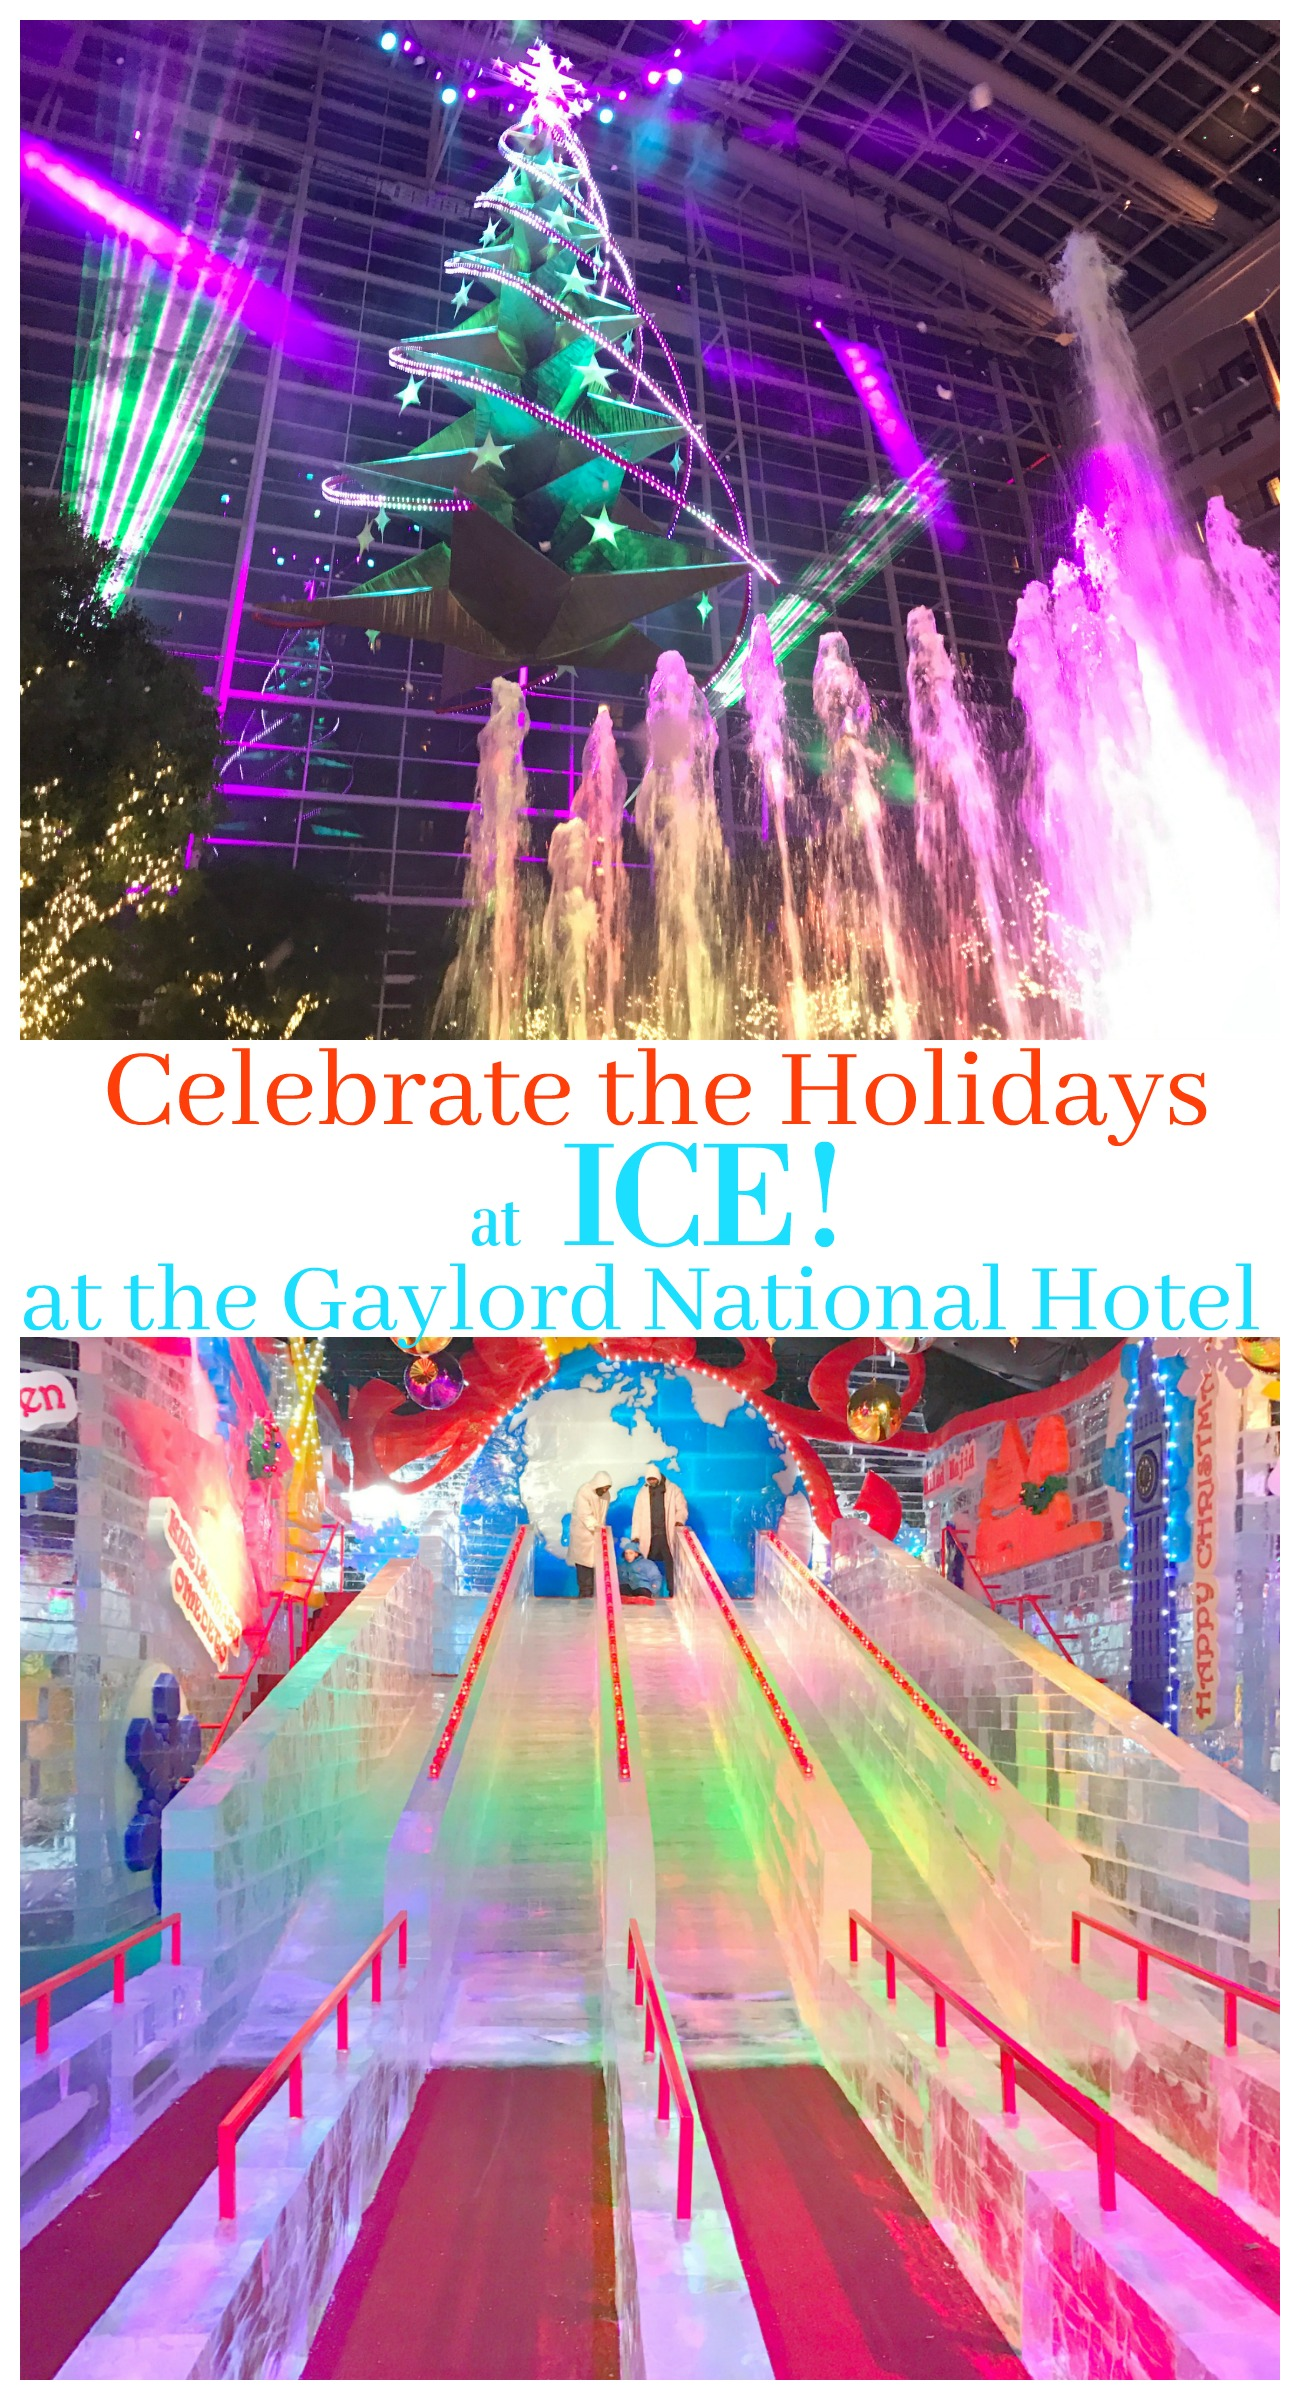 Celebrate the Holidays with Gaylord National & ICE!